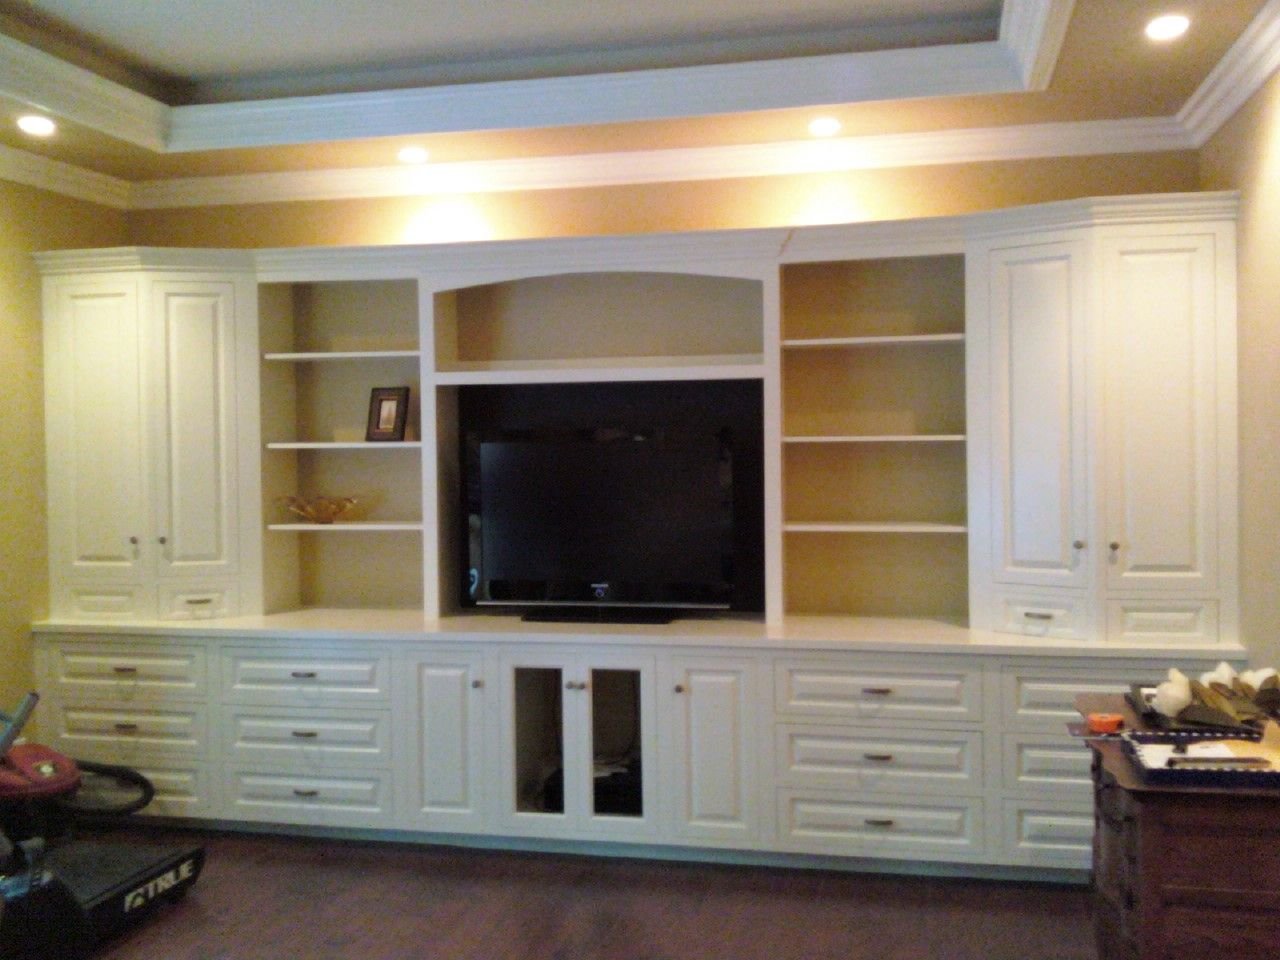 Living Room Wall Units With Storage - Wall units Design ... on Living Room Wall Units id=60884